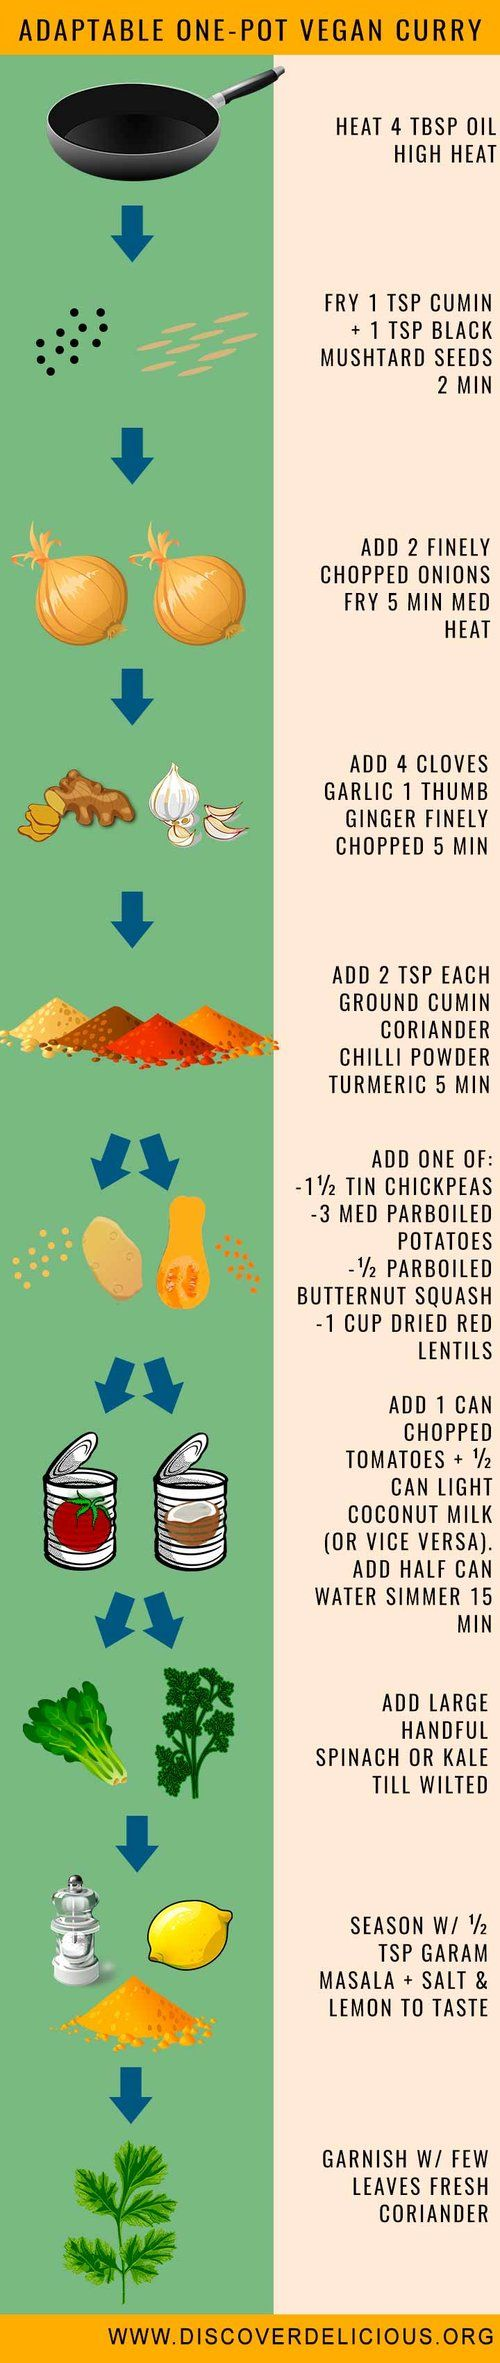 Adaptable One Pot Vegan Curry   Infographic Flowchart   www.discoverdelicious.org   Vegan Food Blog